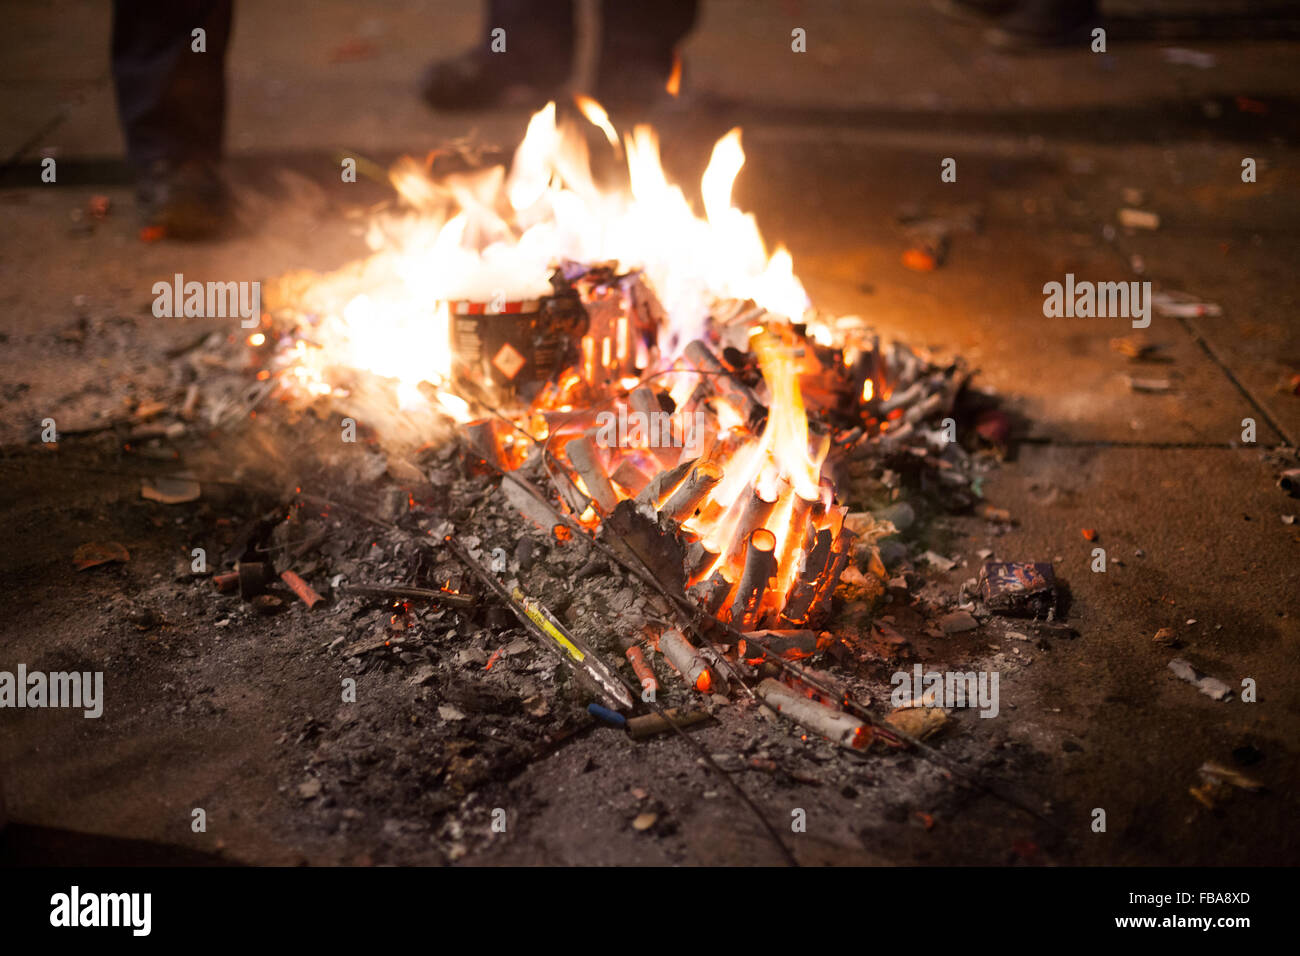 Fire built out of spent fireworks by homeless to keep warm, Berlin New Years Eve 2013 Stock Photo